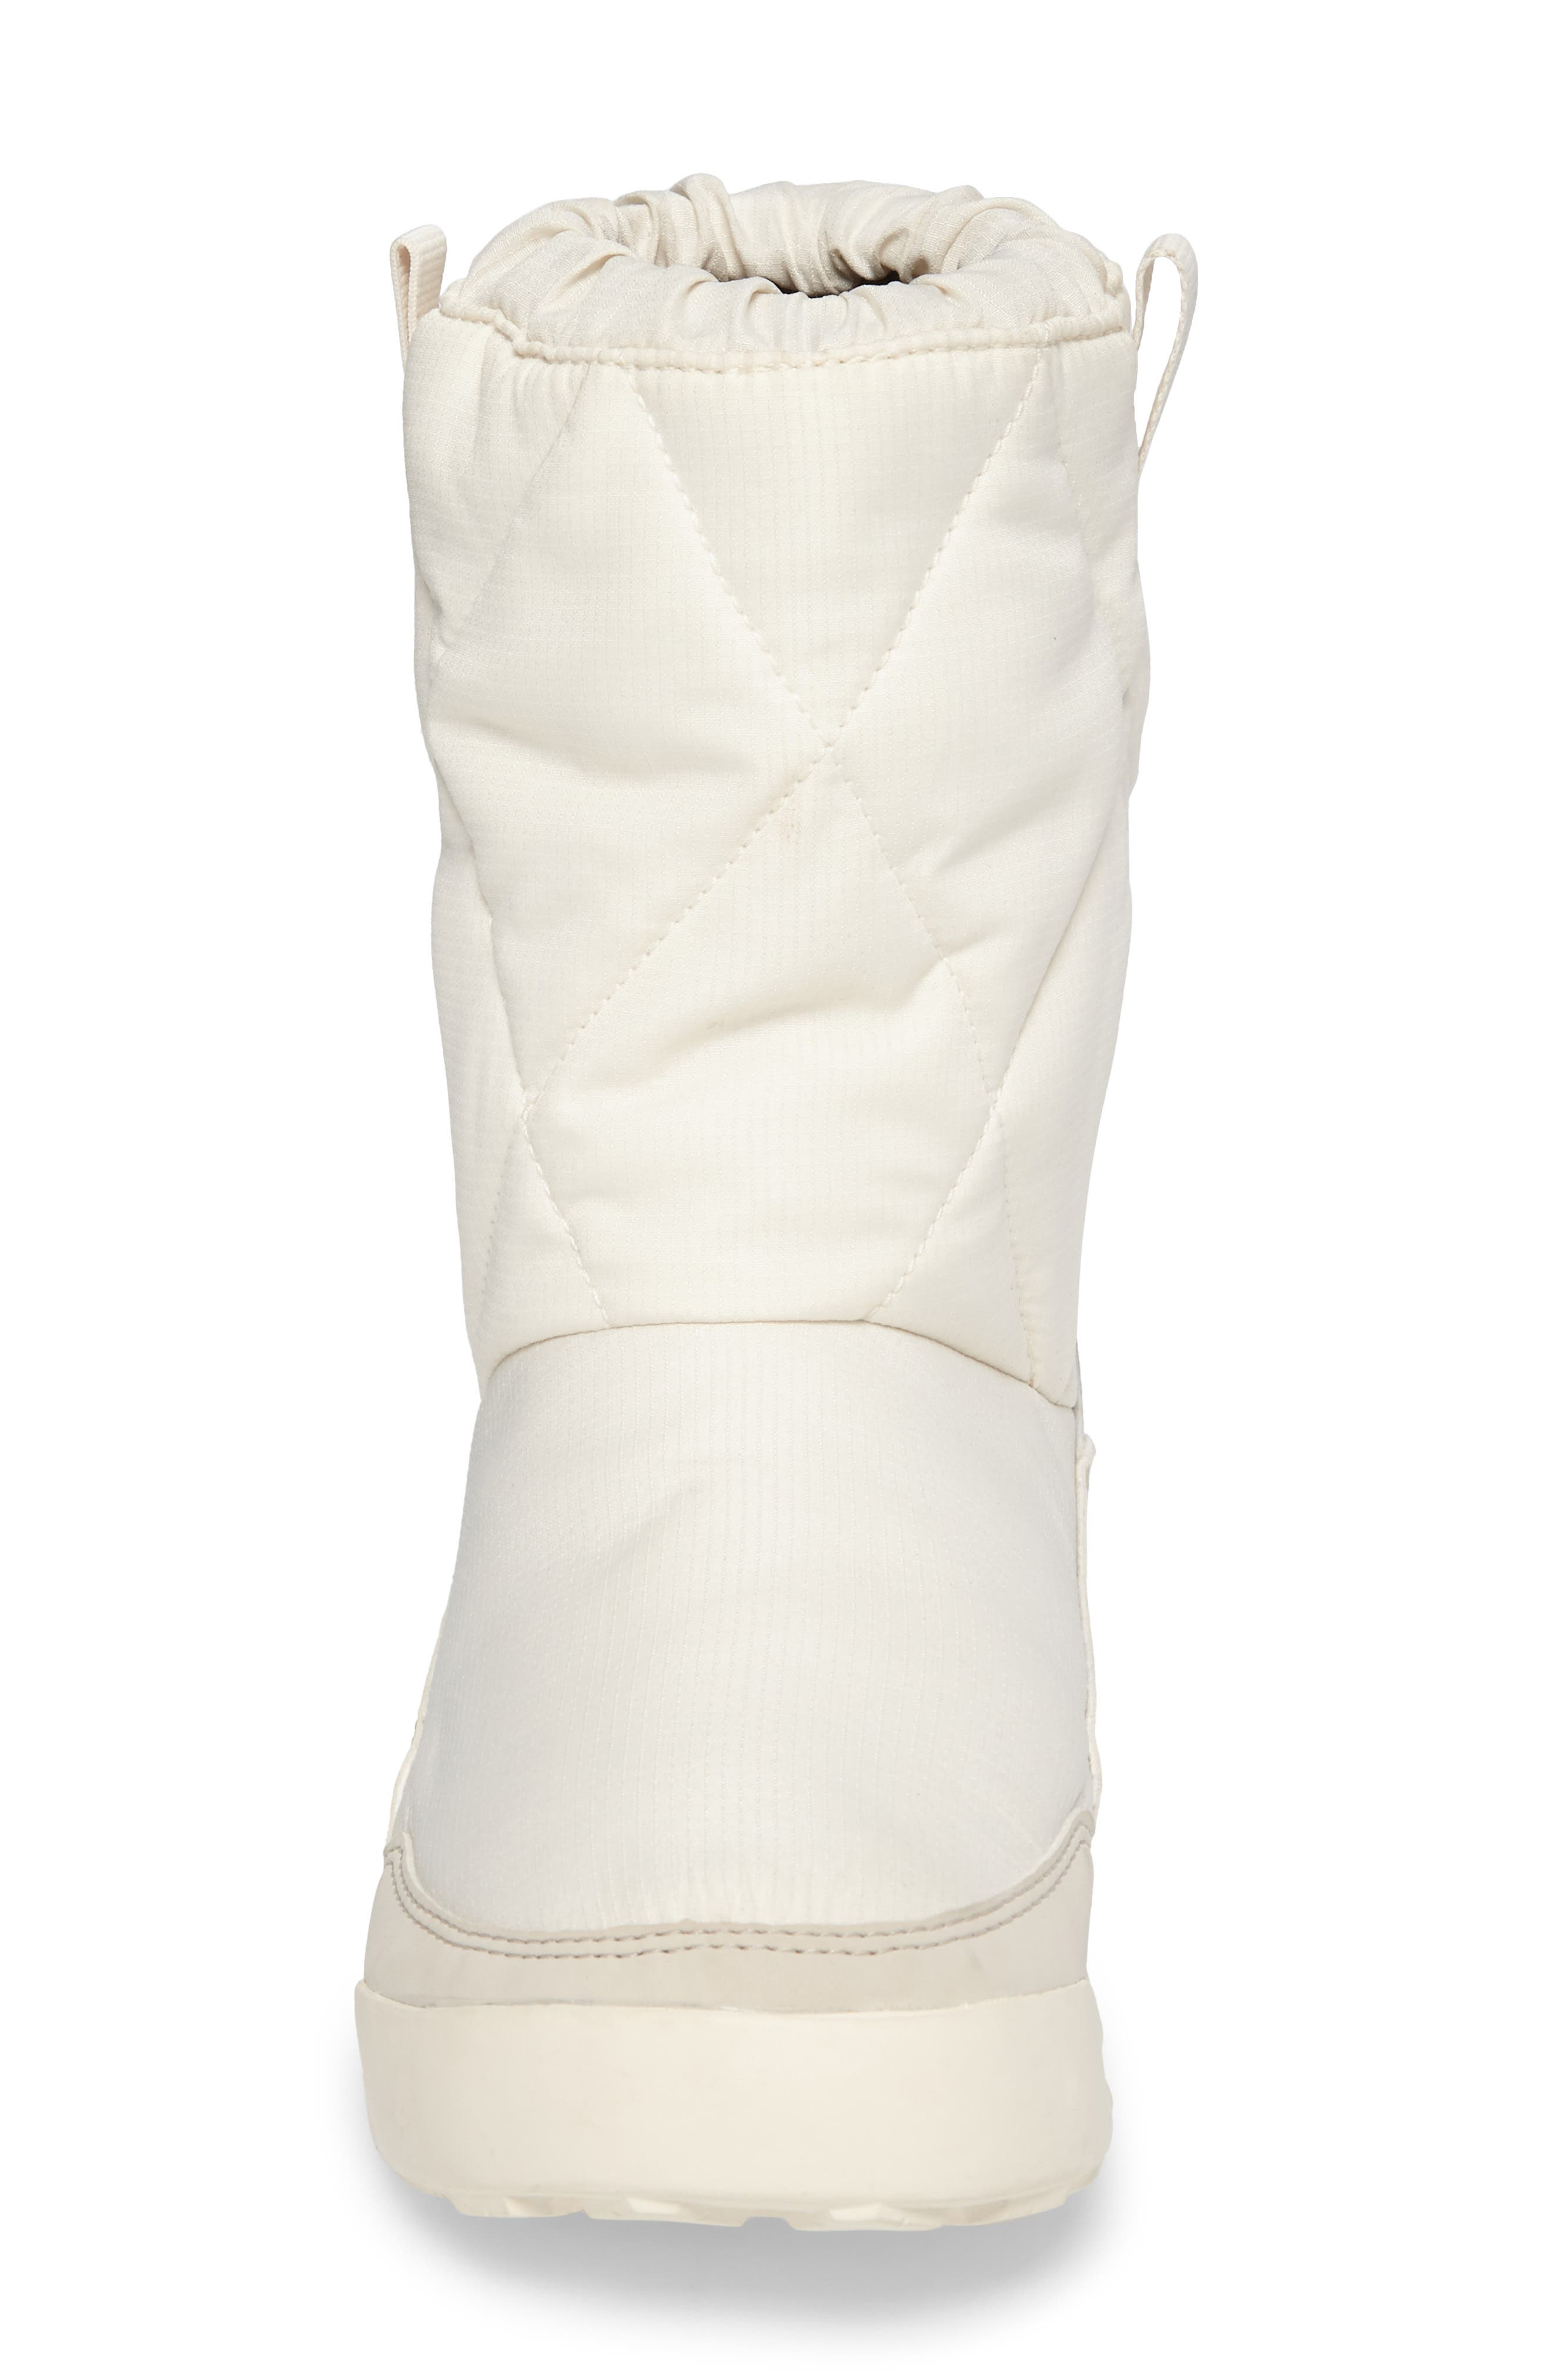 CW Snowpitch Insulated Waterproof Boot,                             Alternate thumbnail 4, color,                             Chalk White/ Clear Brown/ Aqua